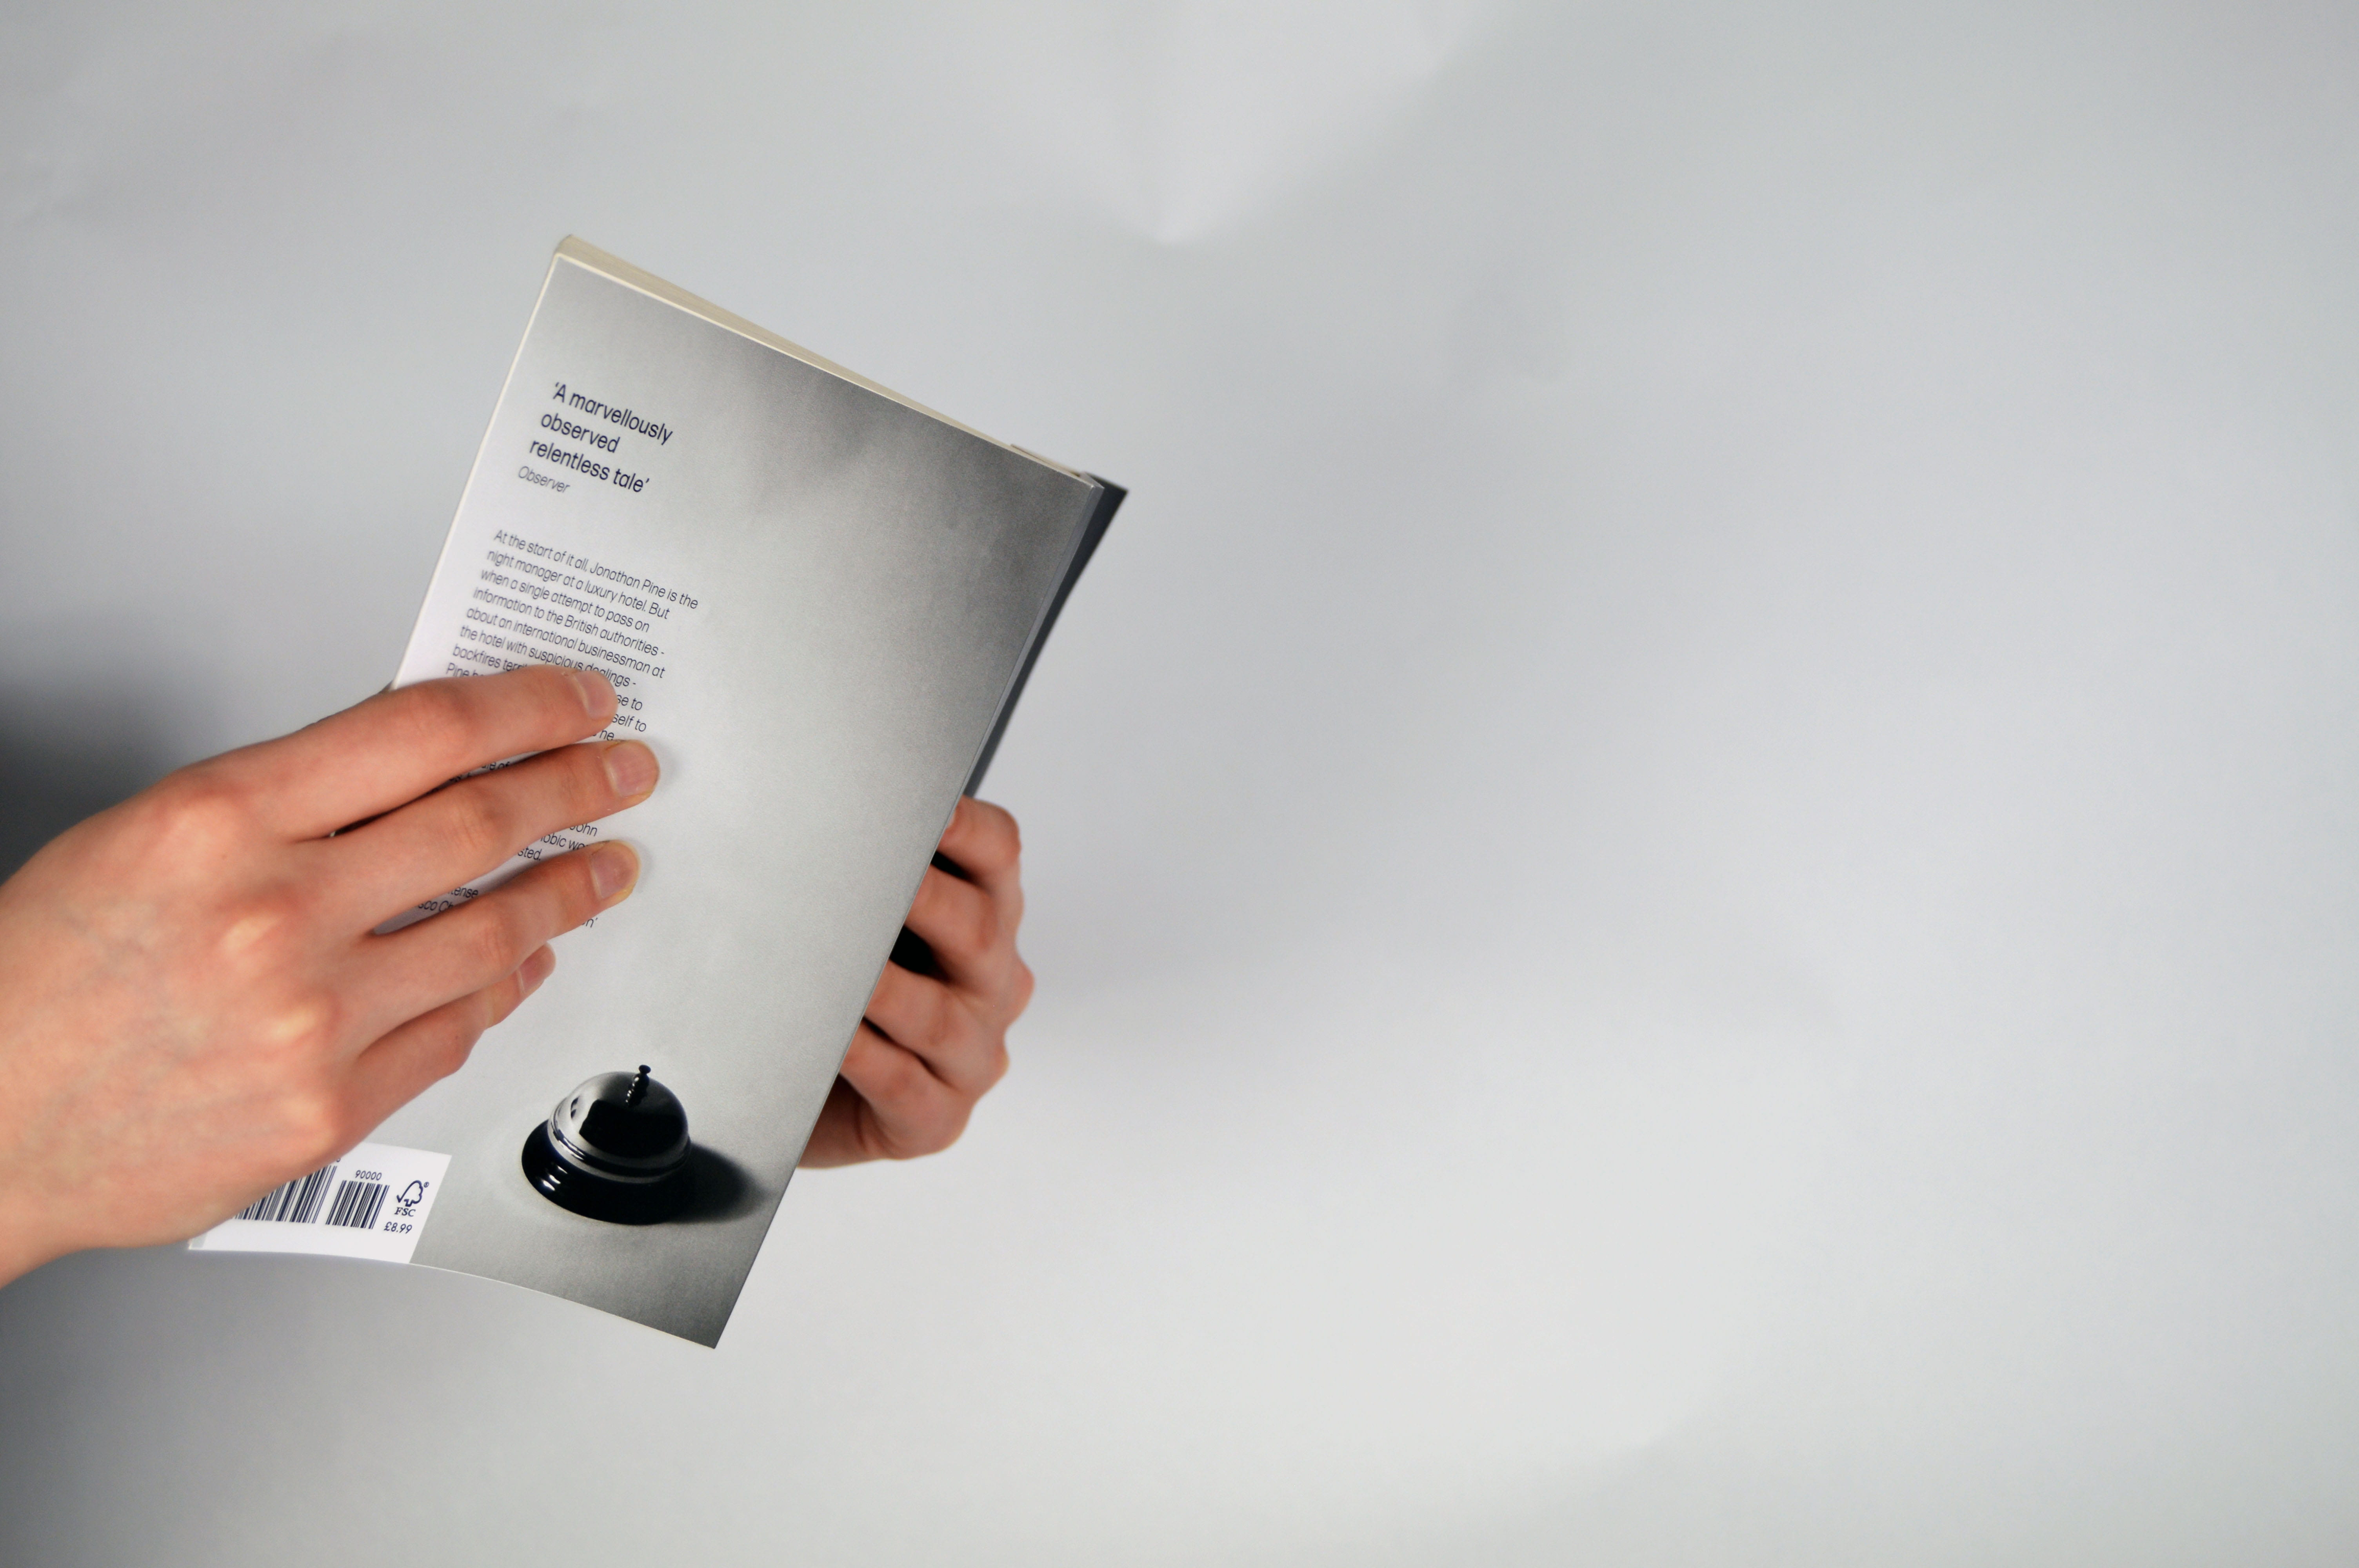 The book being held showing the back cover, this contains the blurb and an image of a receptionists bell by itself.